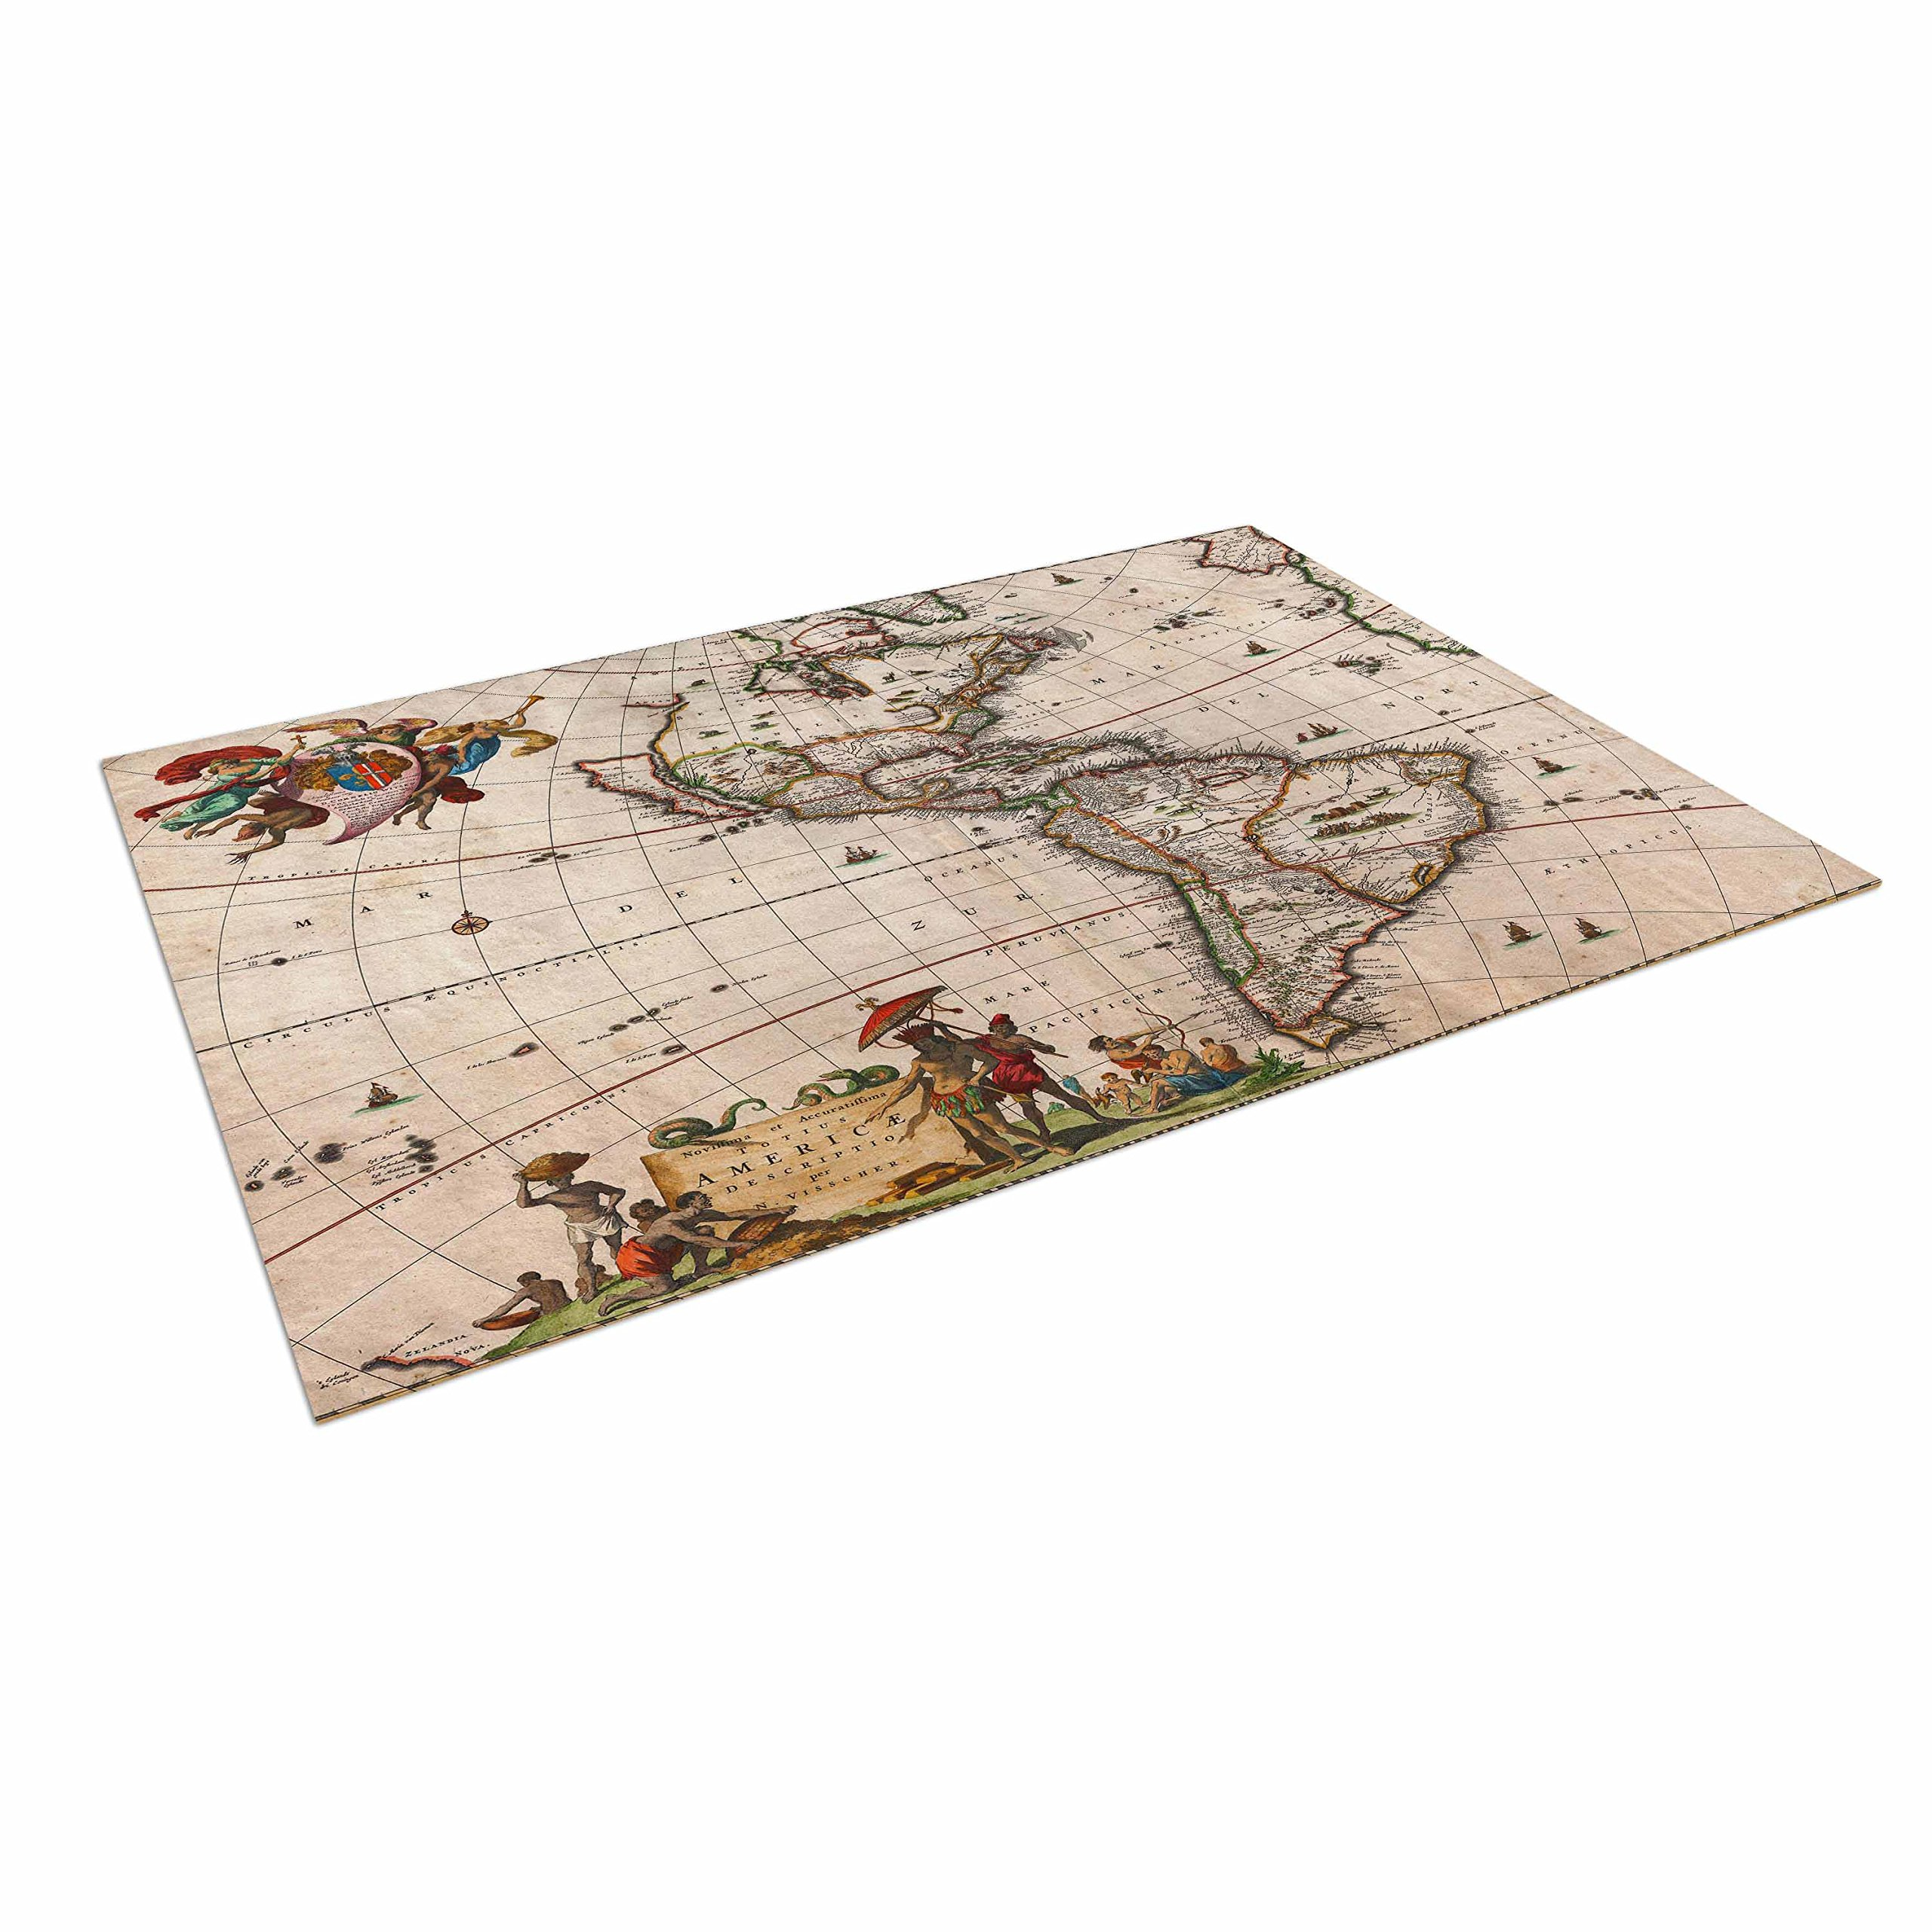 KESS InHouse Bruce Stanfield ''Vintage Map of The America's '' Brown Green Outdoor Floor Mat, 4' x 5'